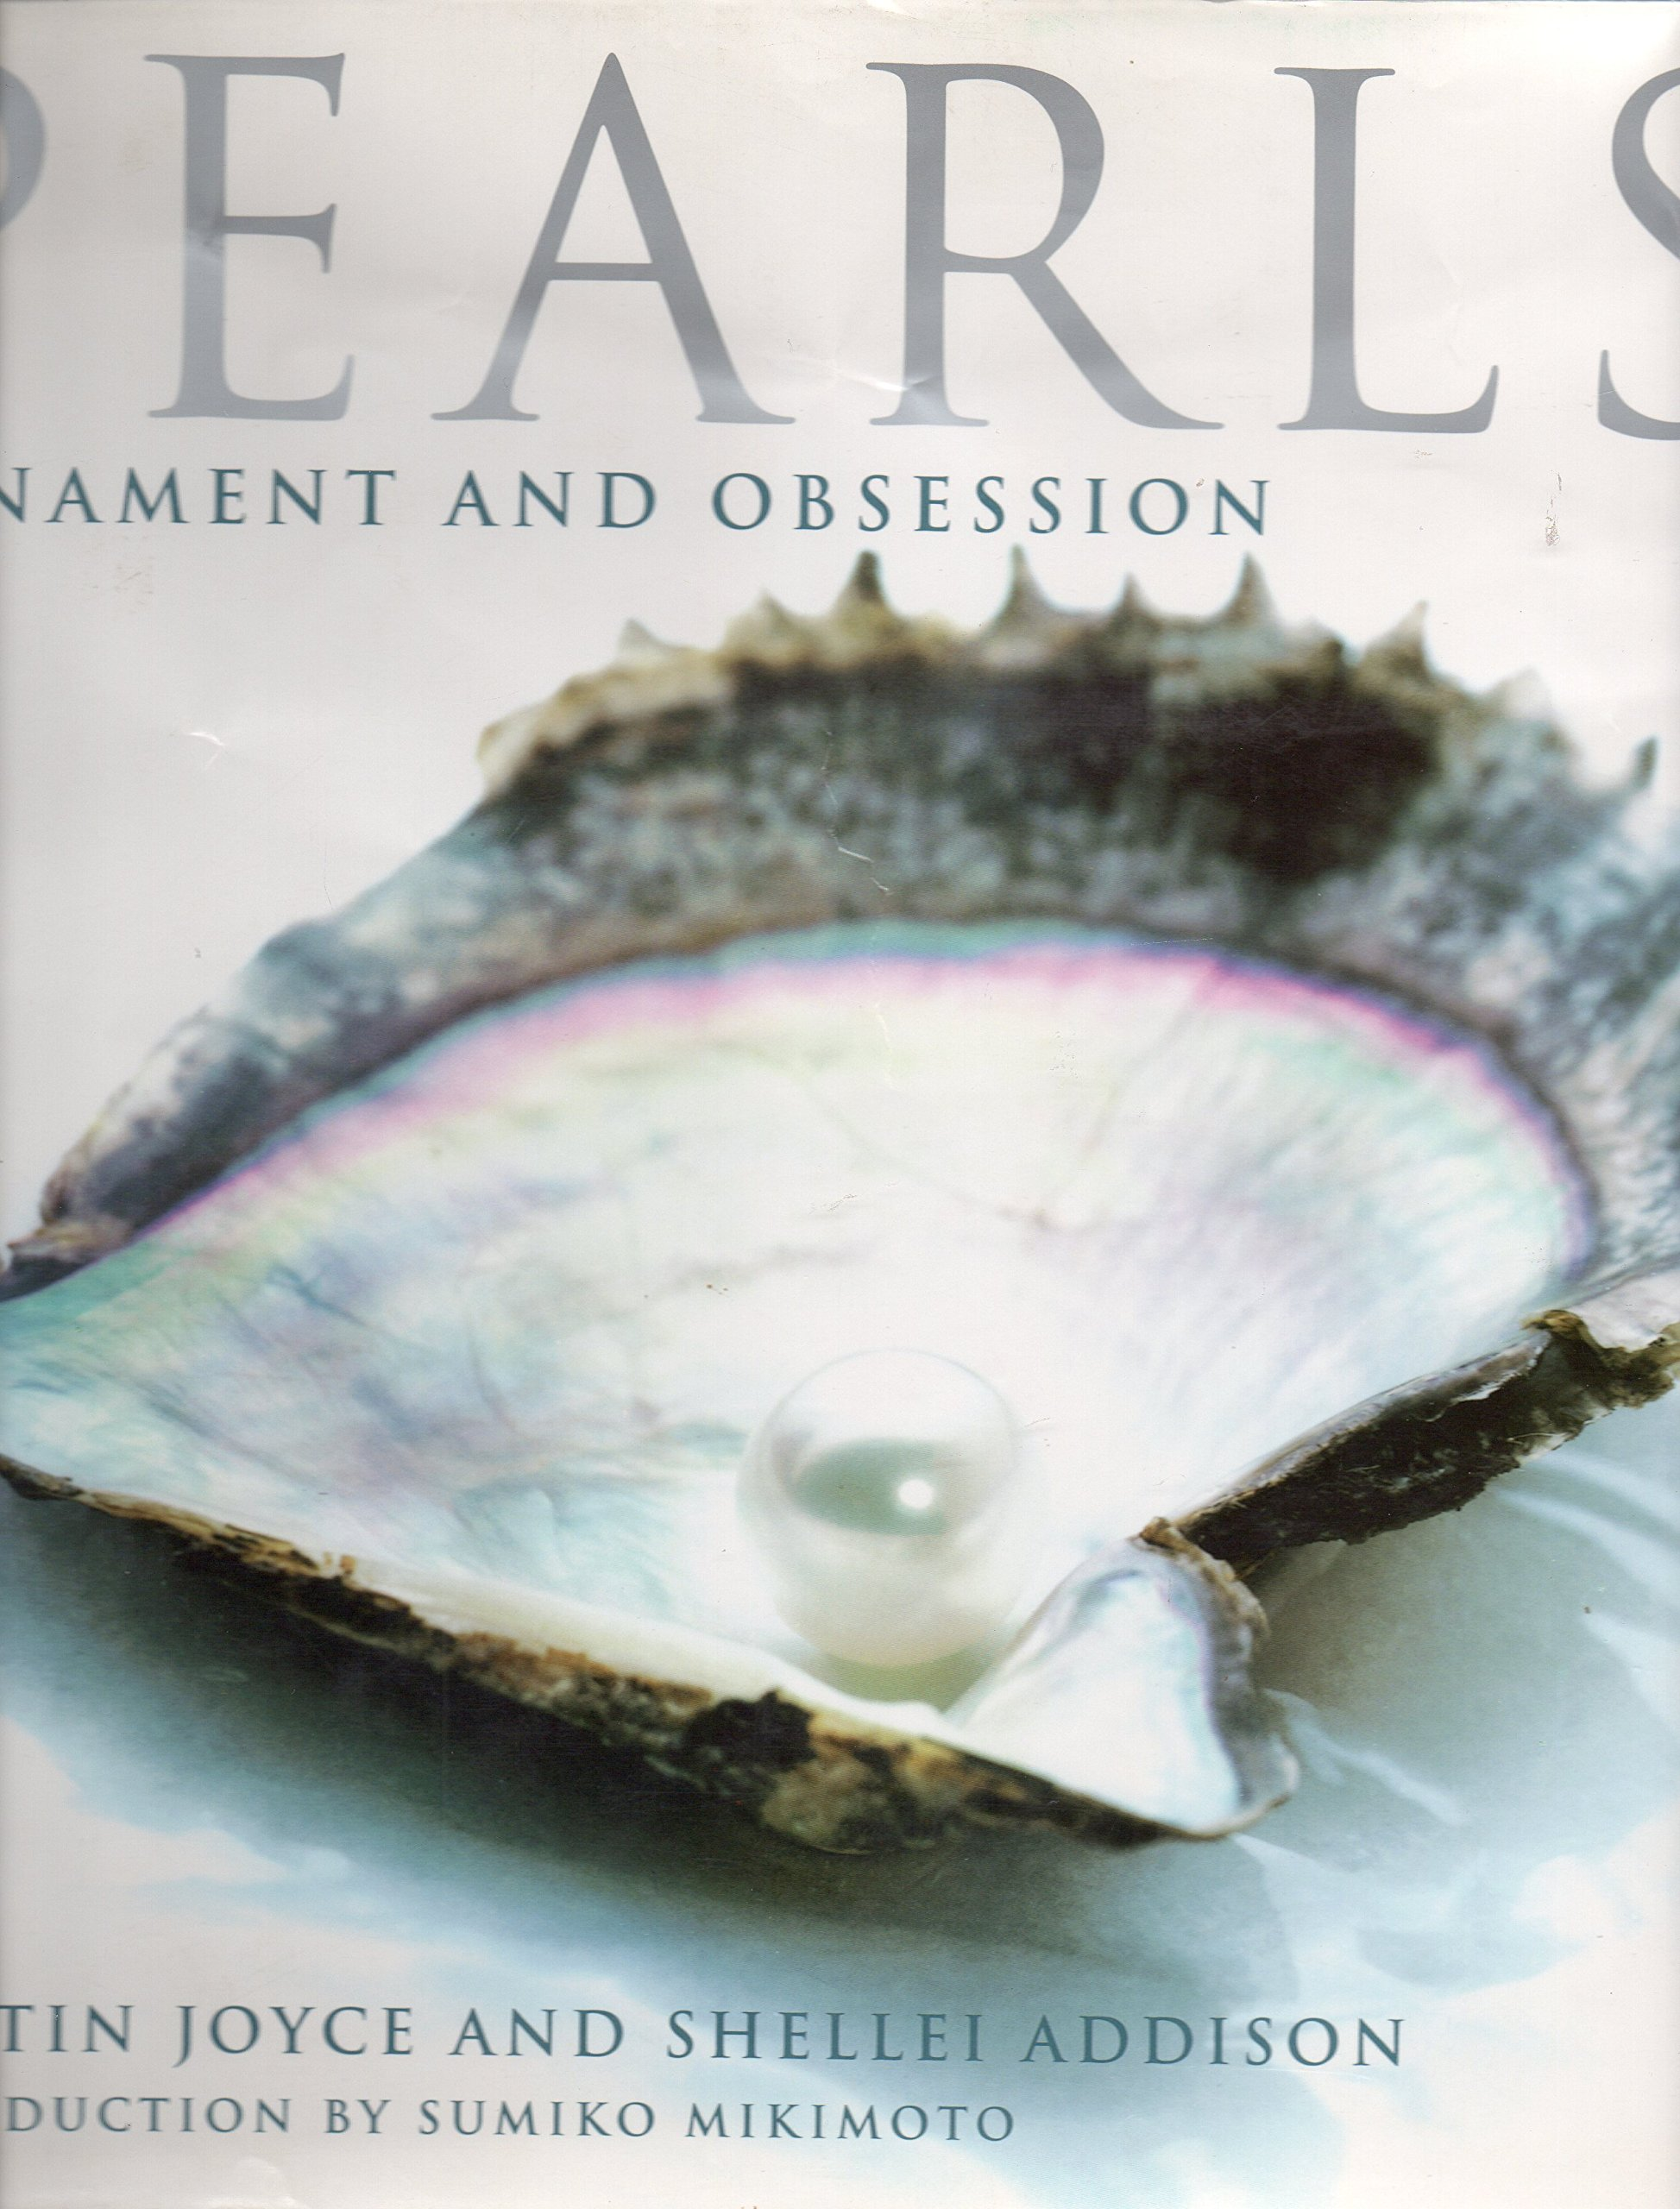 Pearls: Ornament and Obsession